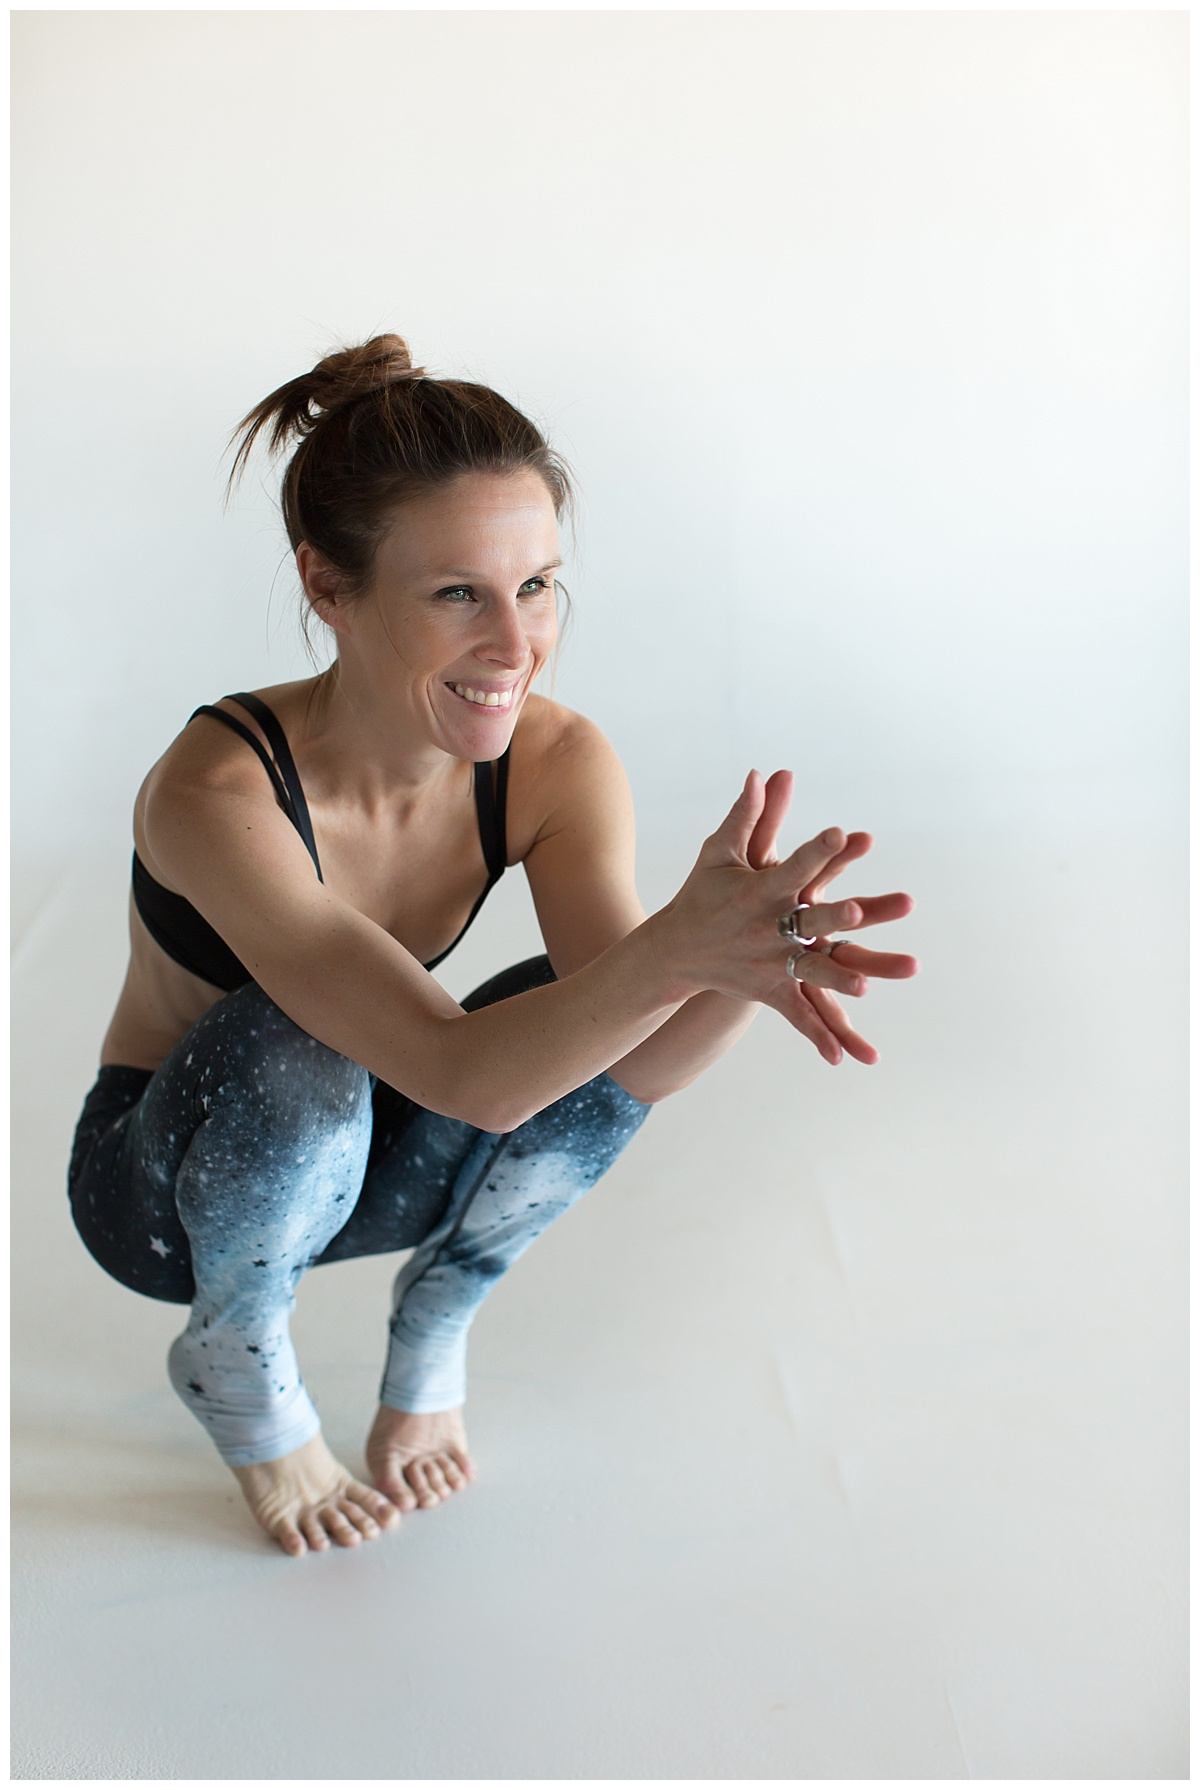 """Bridget Riepl  is the founder of the NJ Yoga Collective and the VibeWell Yoga Festival. Bridget has taught thousands of yoga all over the Jersey Shore since 2010, as well as countless hours studying under transformational humans who have only helped to deepen her spiritual, emotional, physical and mental commitment to the practice. In 2017, Bridget founded the NJ Yoga Collective - NJ's lifestyle guide for wellness, health, happiness, meditation, mindfulness and one of her truest loves, the practice of yoga! Bridget is inspired by connection, her family, nature and getting vulnerable. She is most alive when she is working with others, serving as a catalyst for people seeking to discover their highest self as teachers and practitioners. She listens on a deep level, sees the big picture, and empowers others to live their dreams. Bridget was voted the """"Best Yoga Teacher in Monmouth County"""" in 2016 and 2018 by the readers of Monmouth Health and Life Magazine. When she isn't teaching, writing, talking, inspiring, creating and collaborating, she is on the beach with her kids. You can find her on Instagram at @bridgetriepl and @njyogacollective."""